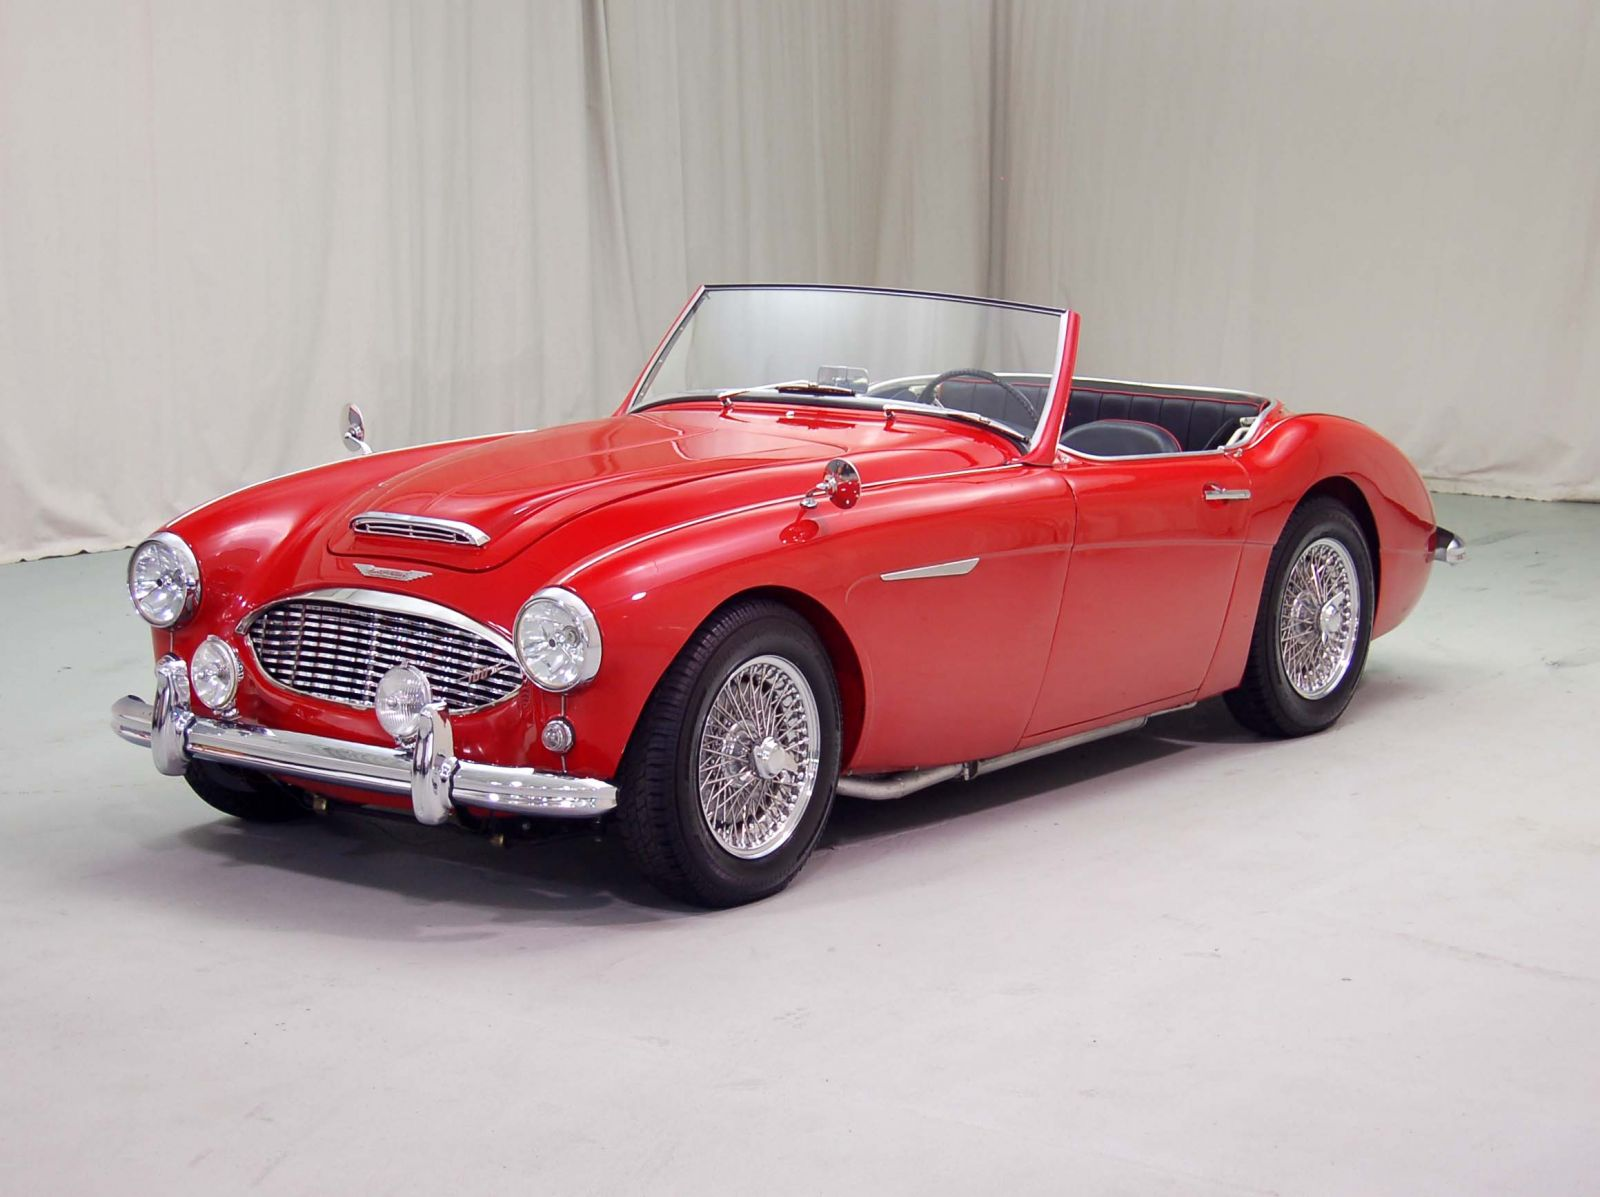 1957 Austin Healey 100-6 Classic Car For Sale | Buy 1957 Austin Healey 100-6 at Hyman LTD